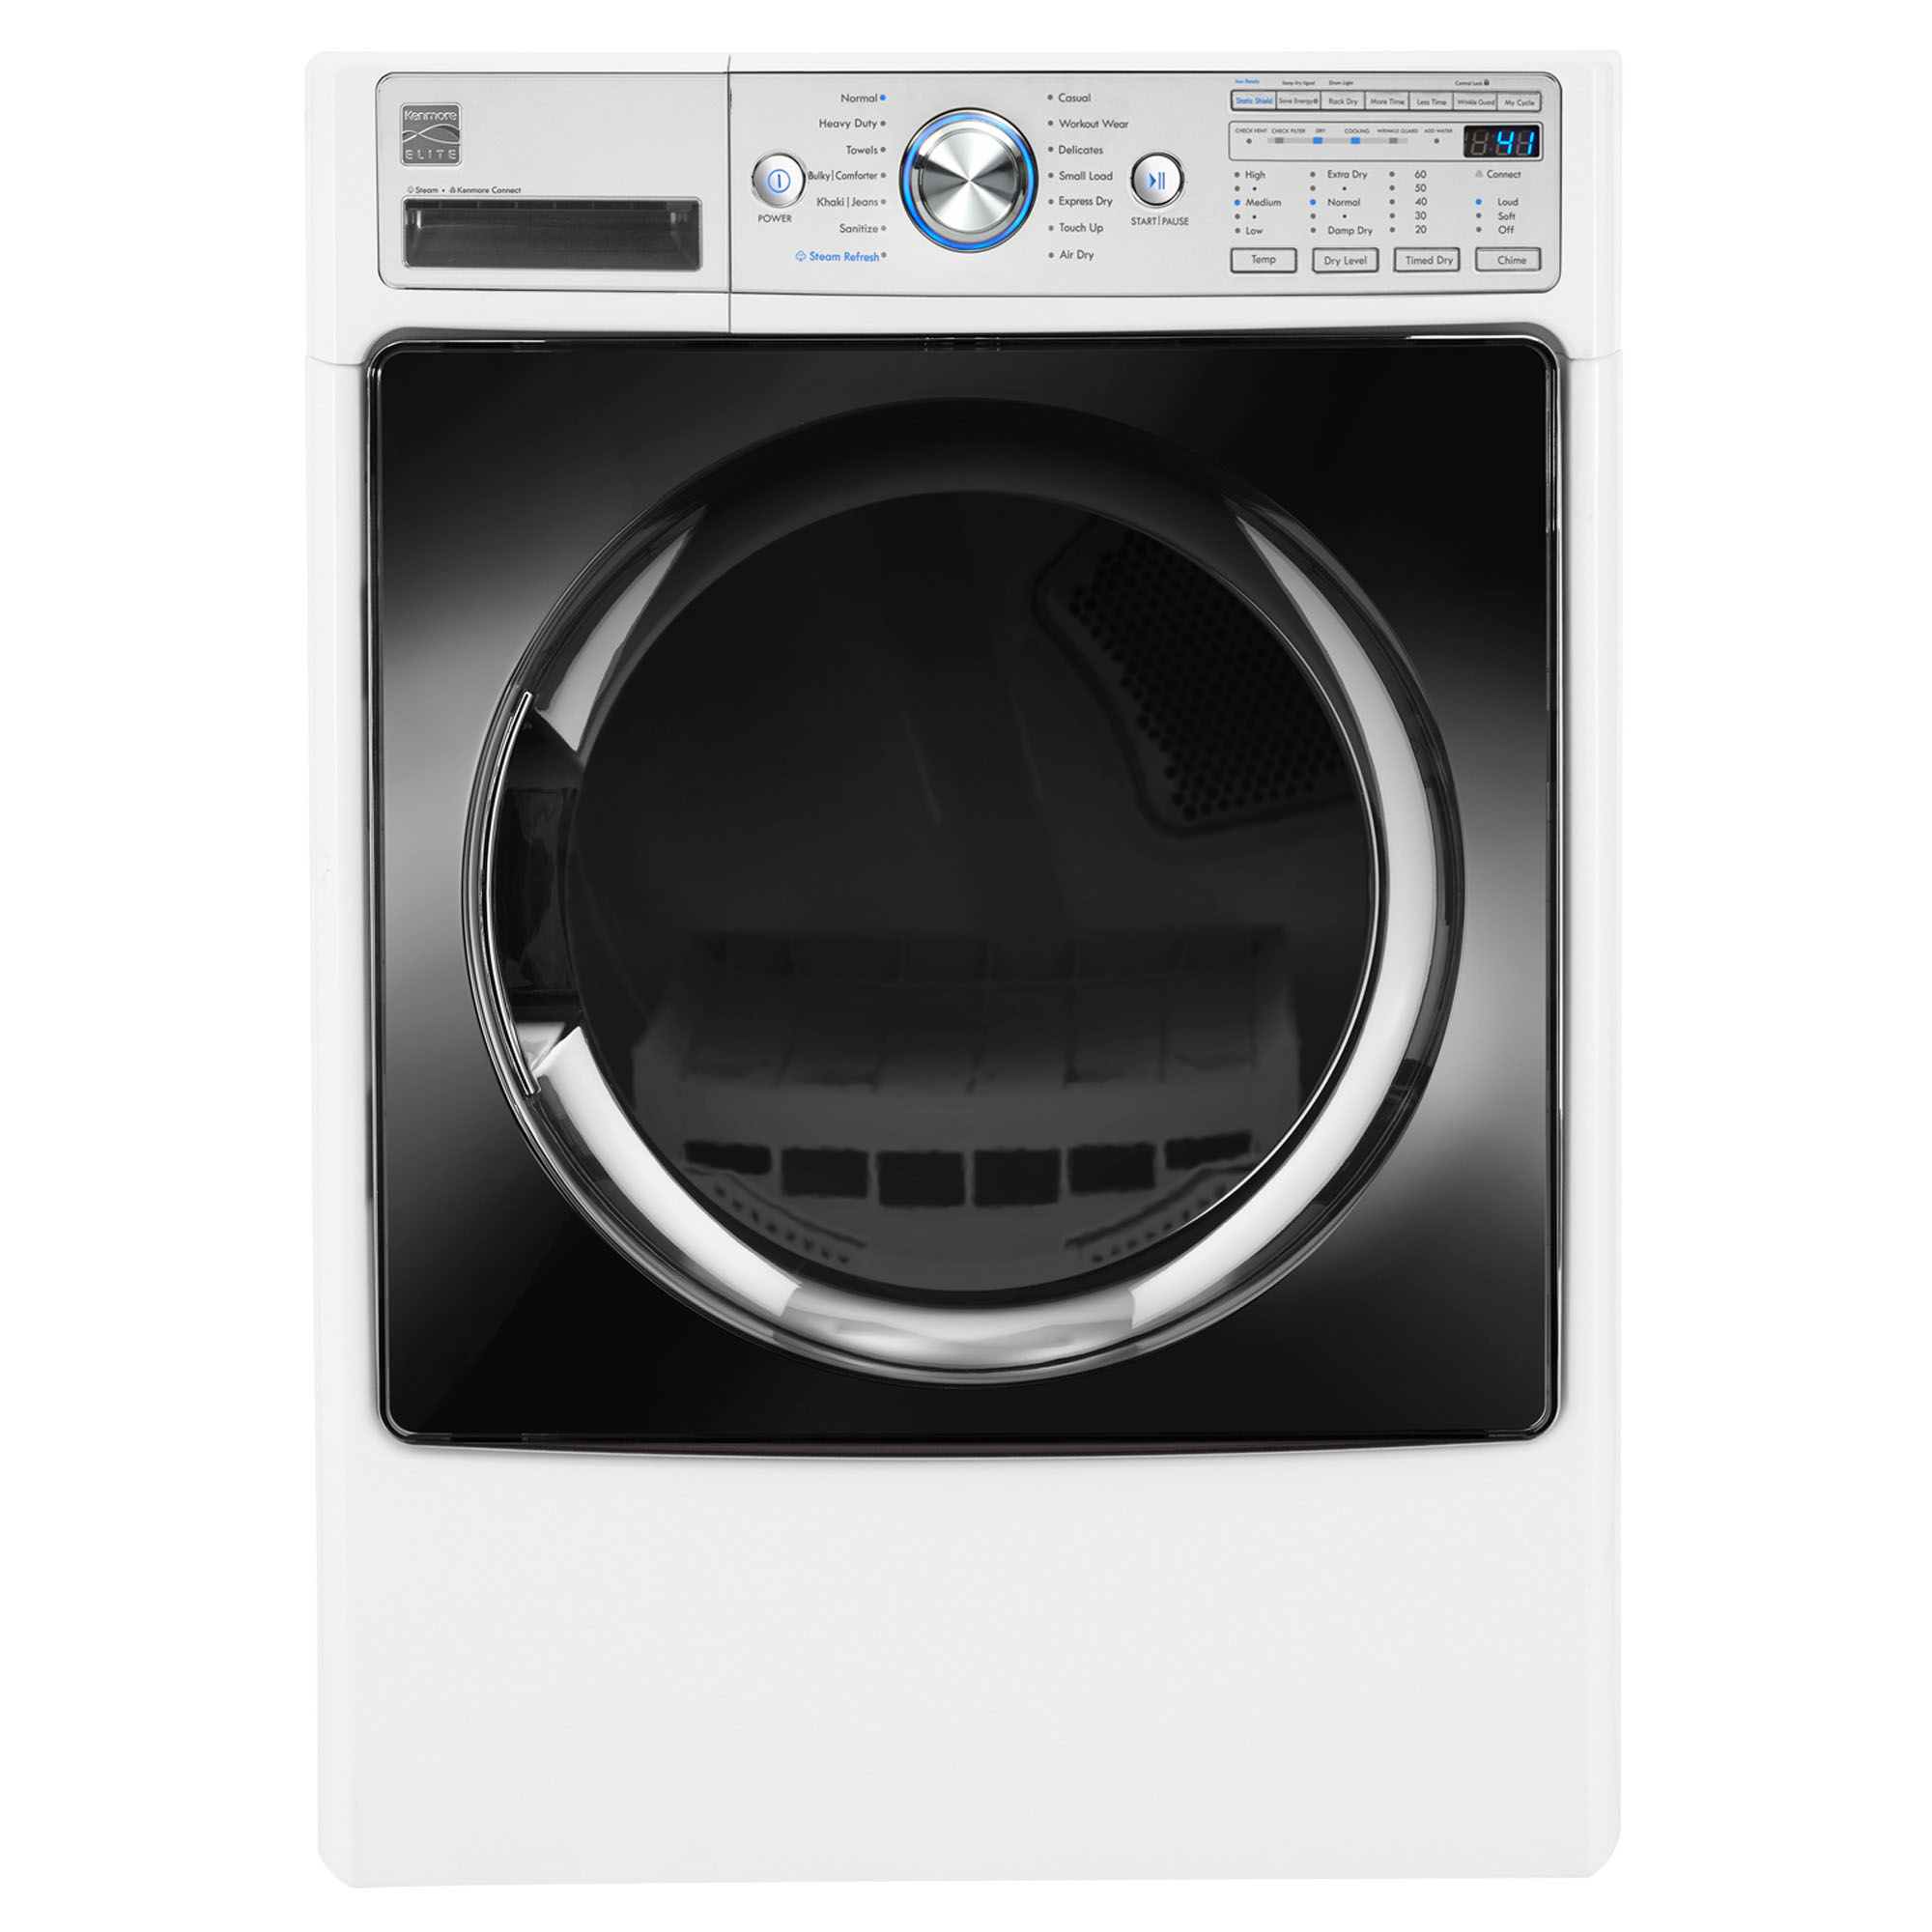 81582-7-4-cu-ft-Electric-Dryer-w-Steam